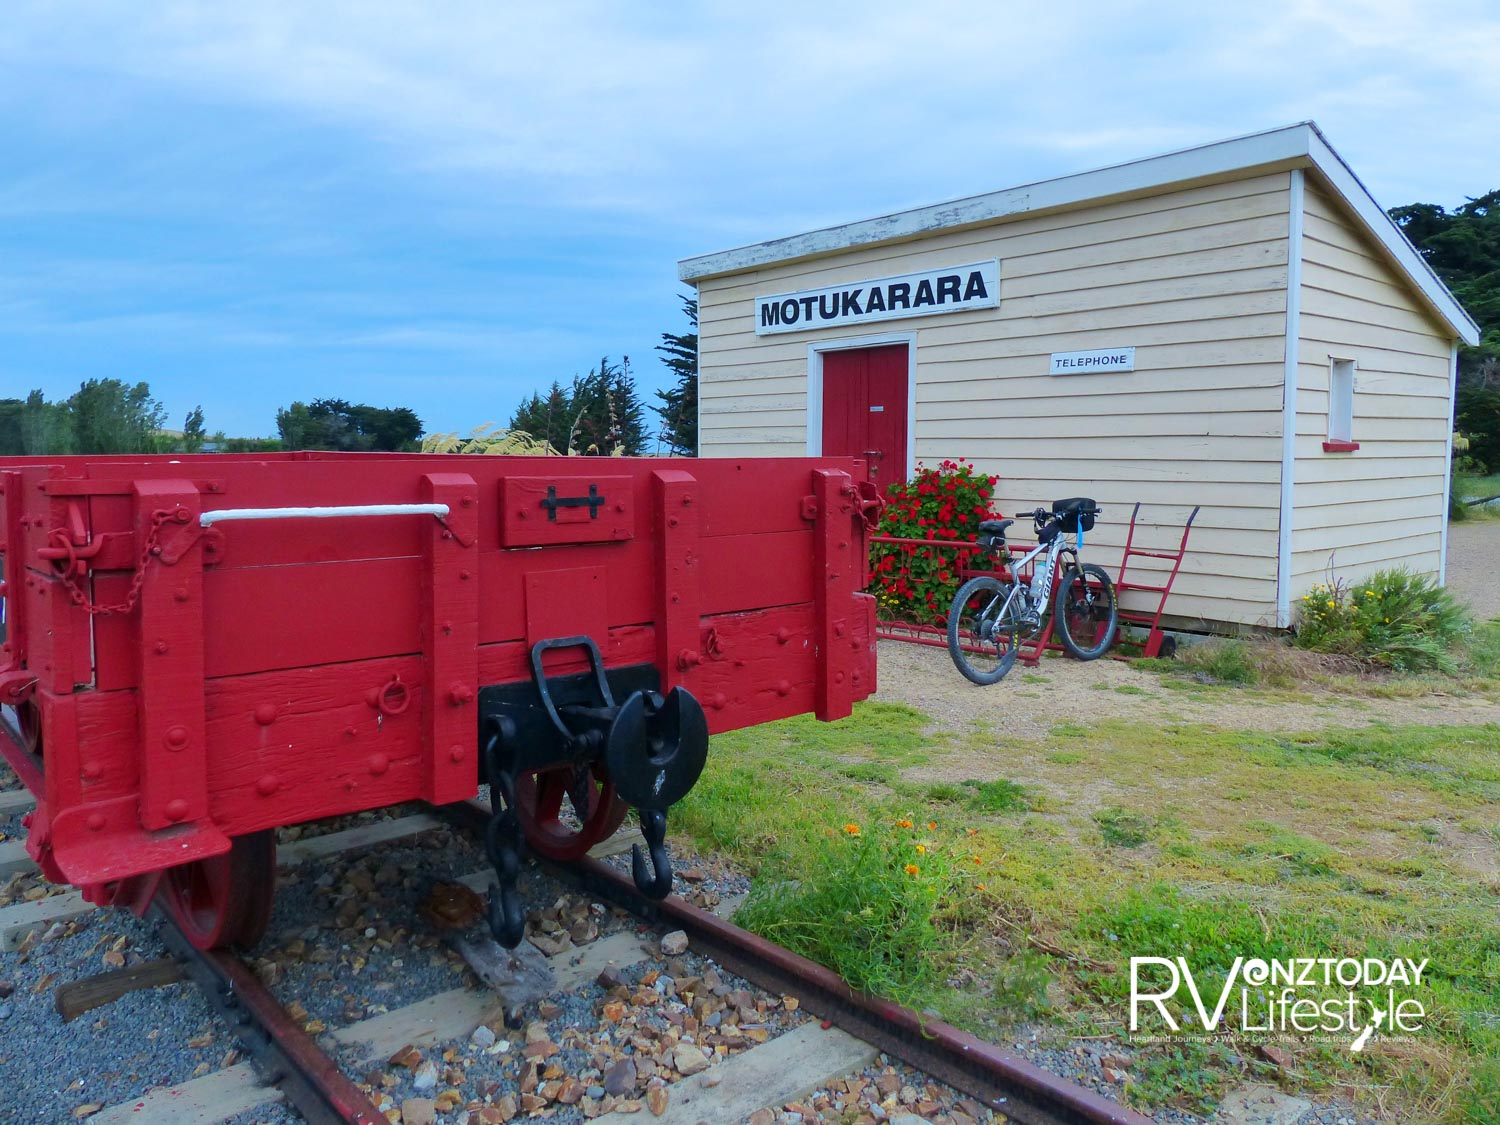 The Motukarara Station is magnificent and the finest, cutest and most extraordinarily well restored railway shed I have seen on my great rides